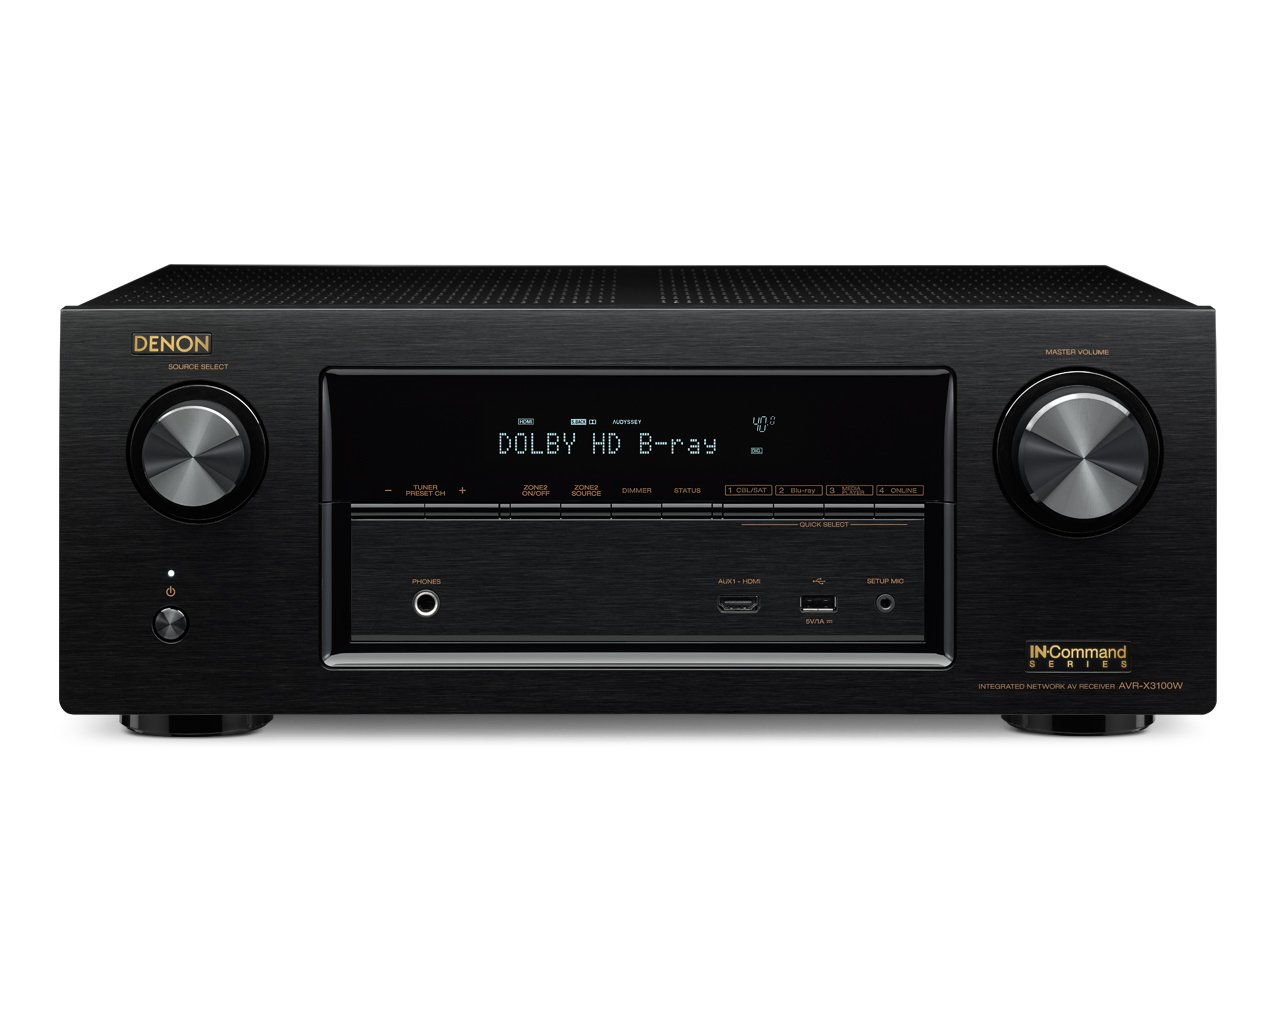 Amazon.com: Denon AVR-X3100W 7.2 Channel Full 4K Ultra HD AV Receiver with  Bluetooth and Wi-Fi (Discontinued by Manufacturer): Home Audio & Theater